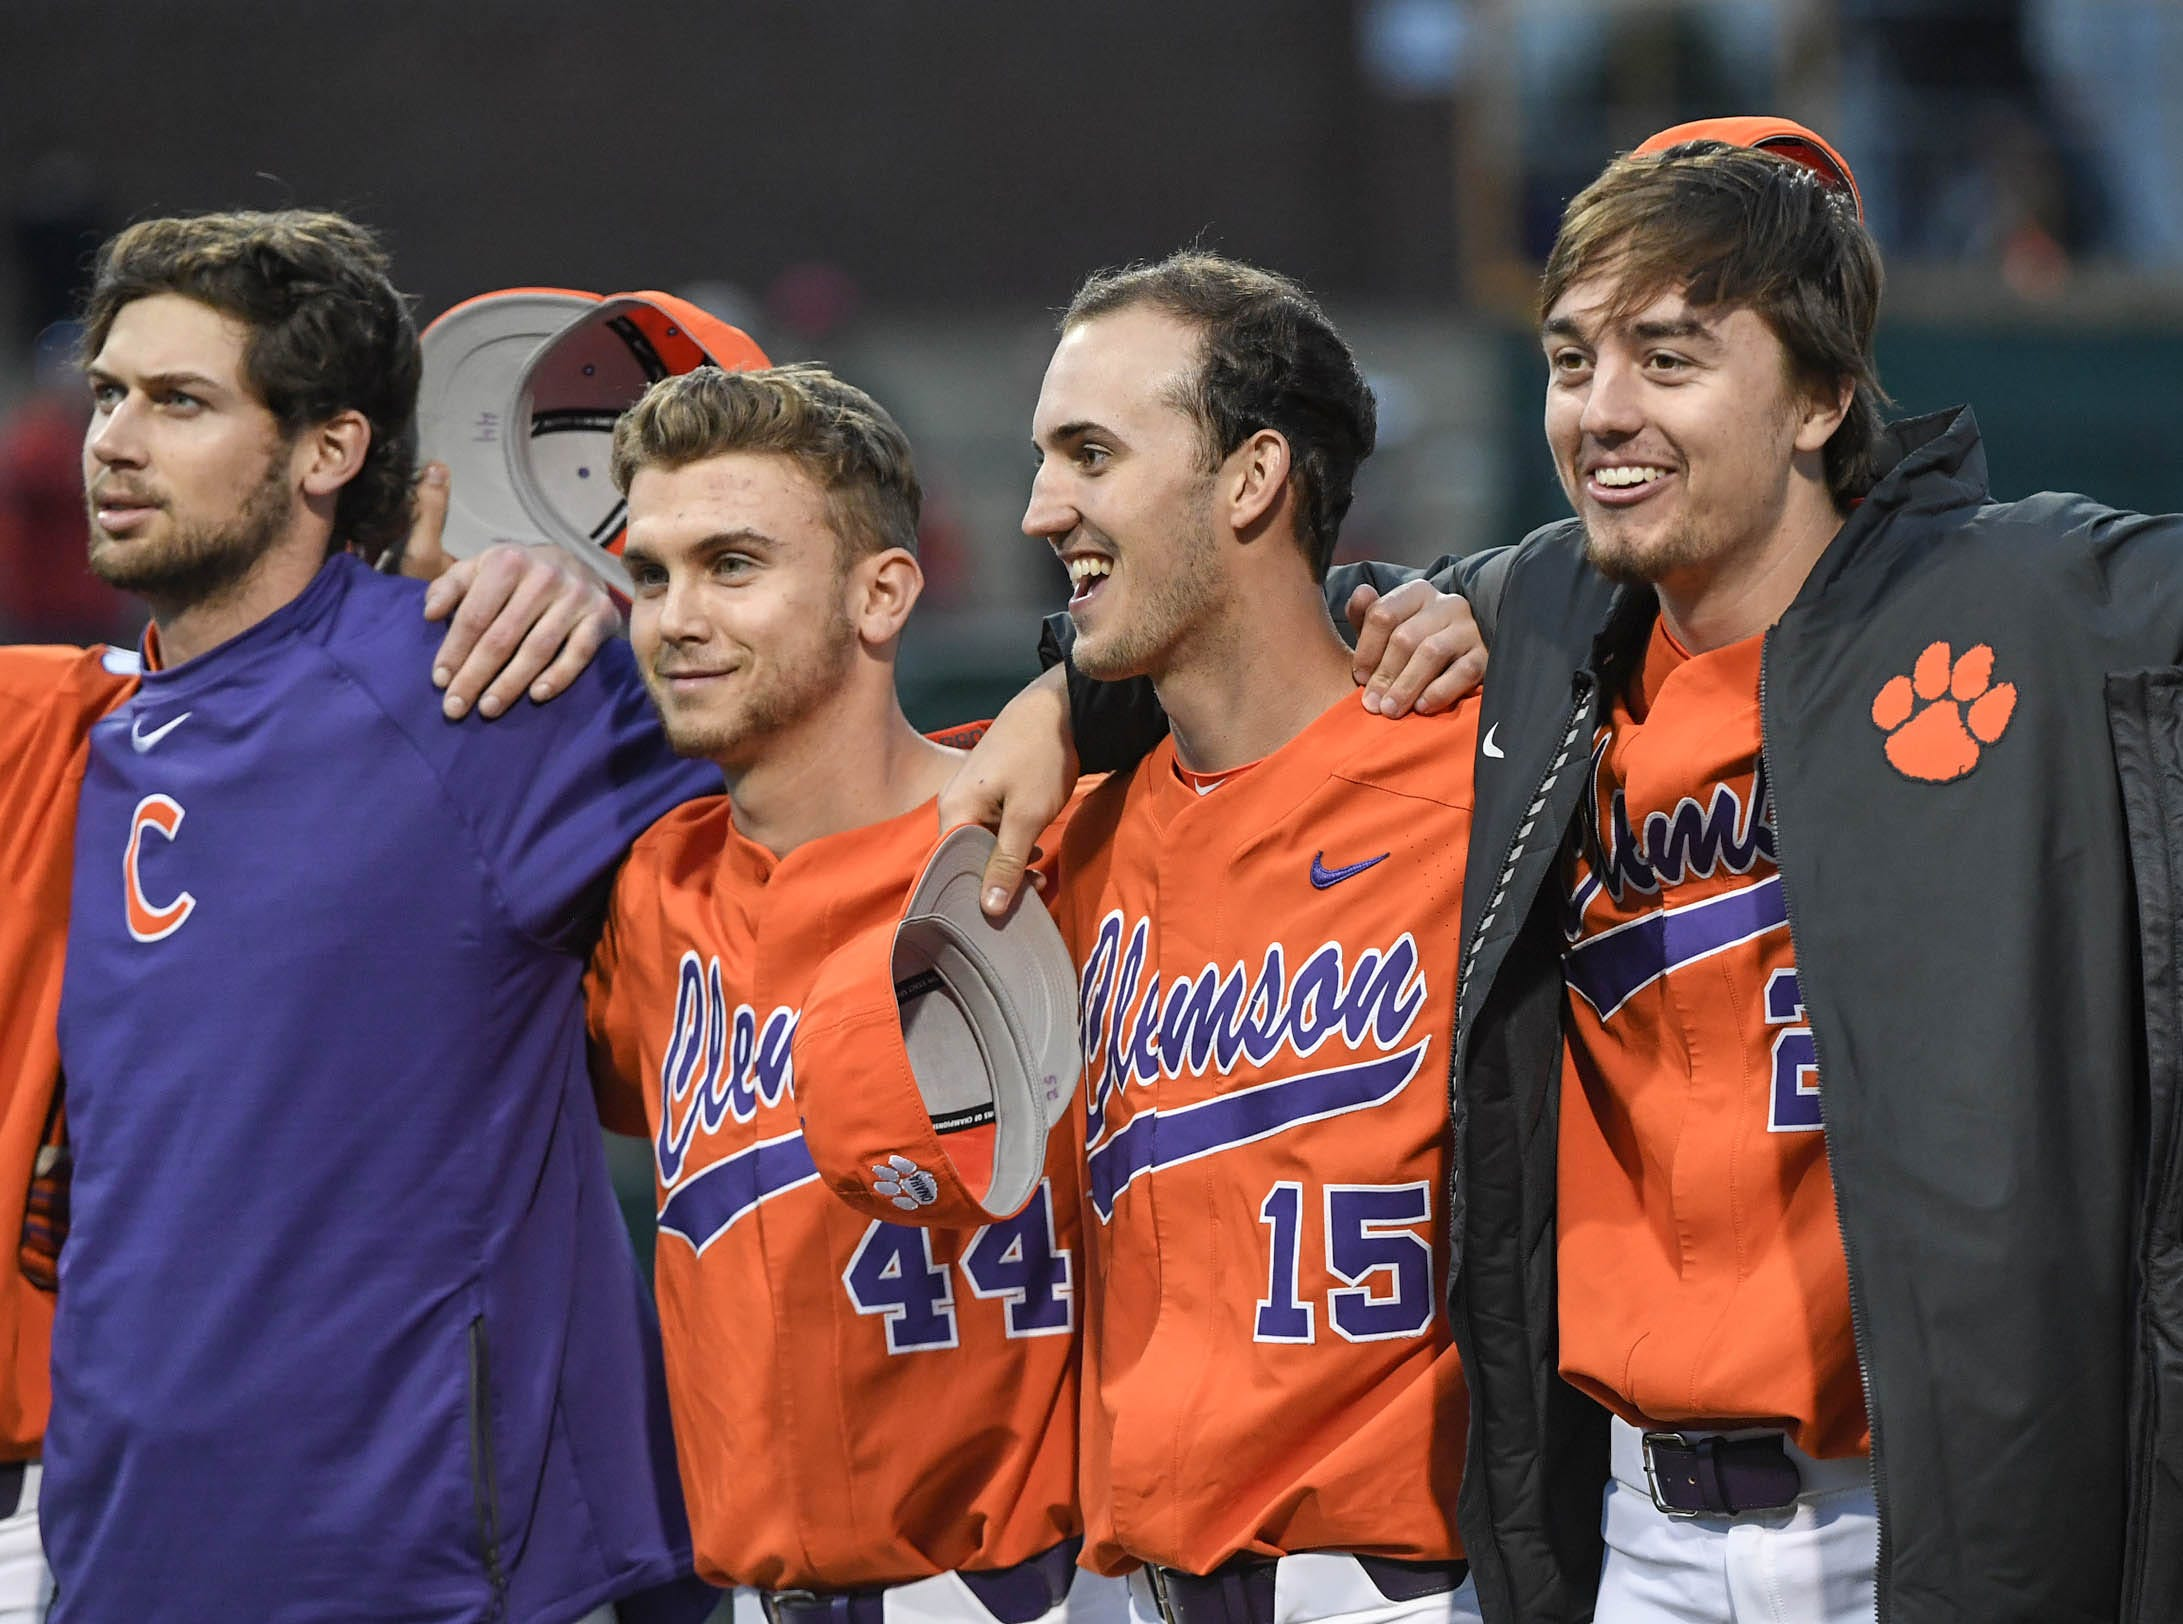 Clemson players freshman Bryar Hawkins(44), freshman James Parker(15), and freshman Jackson Lindley(25) during the alma mater after a 6-2 win over South Alabama in the season opener at Doug Kingsmore Stadium in Clemson Friday, February 15, 2019.